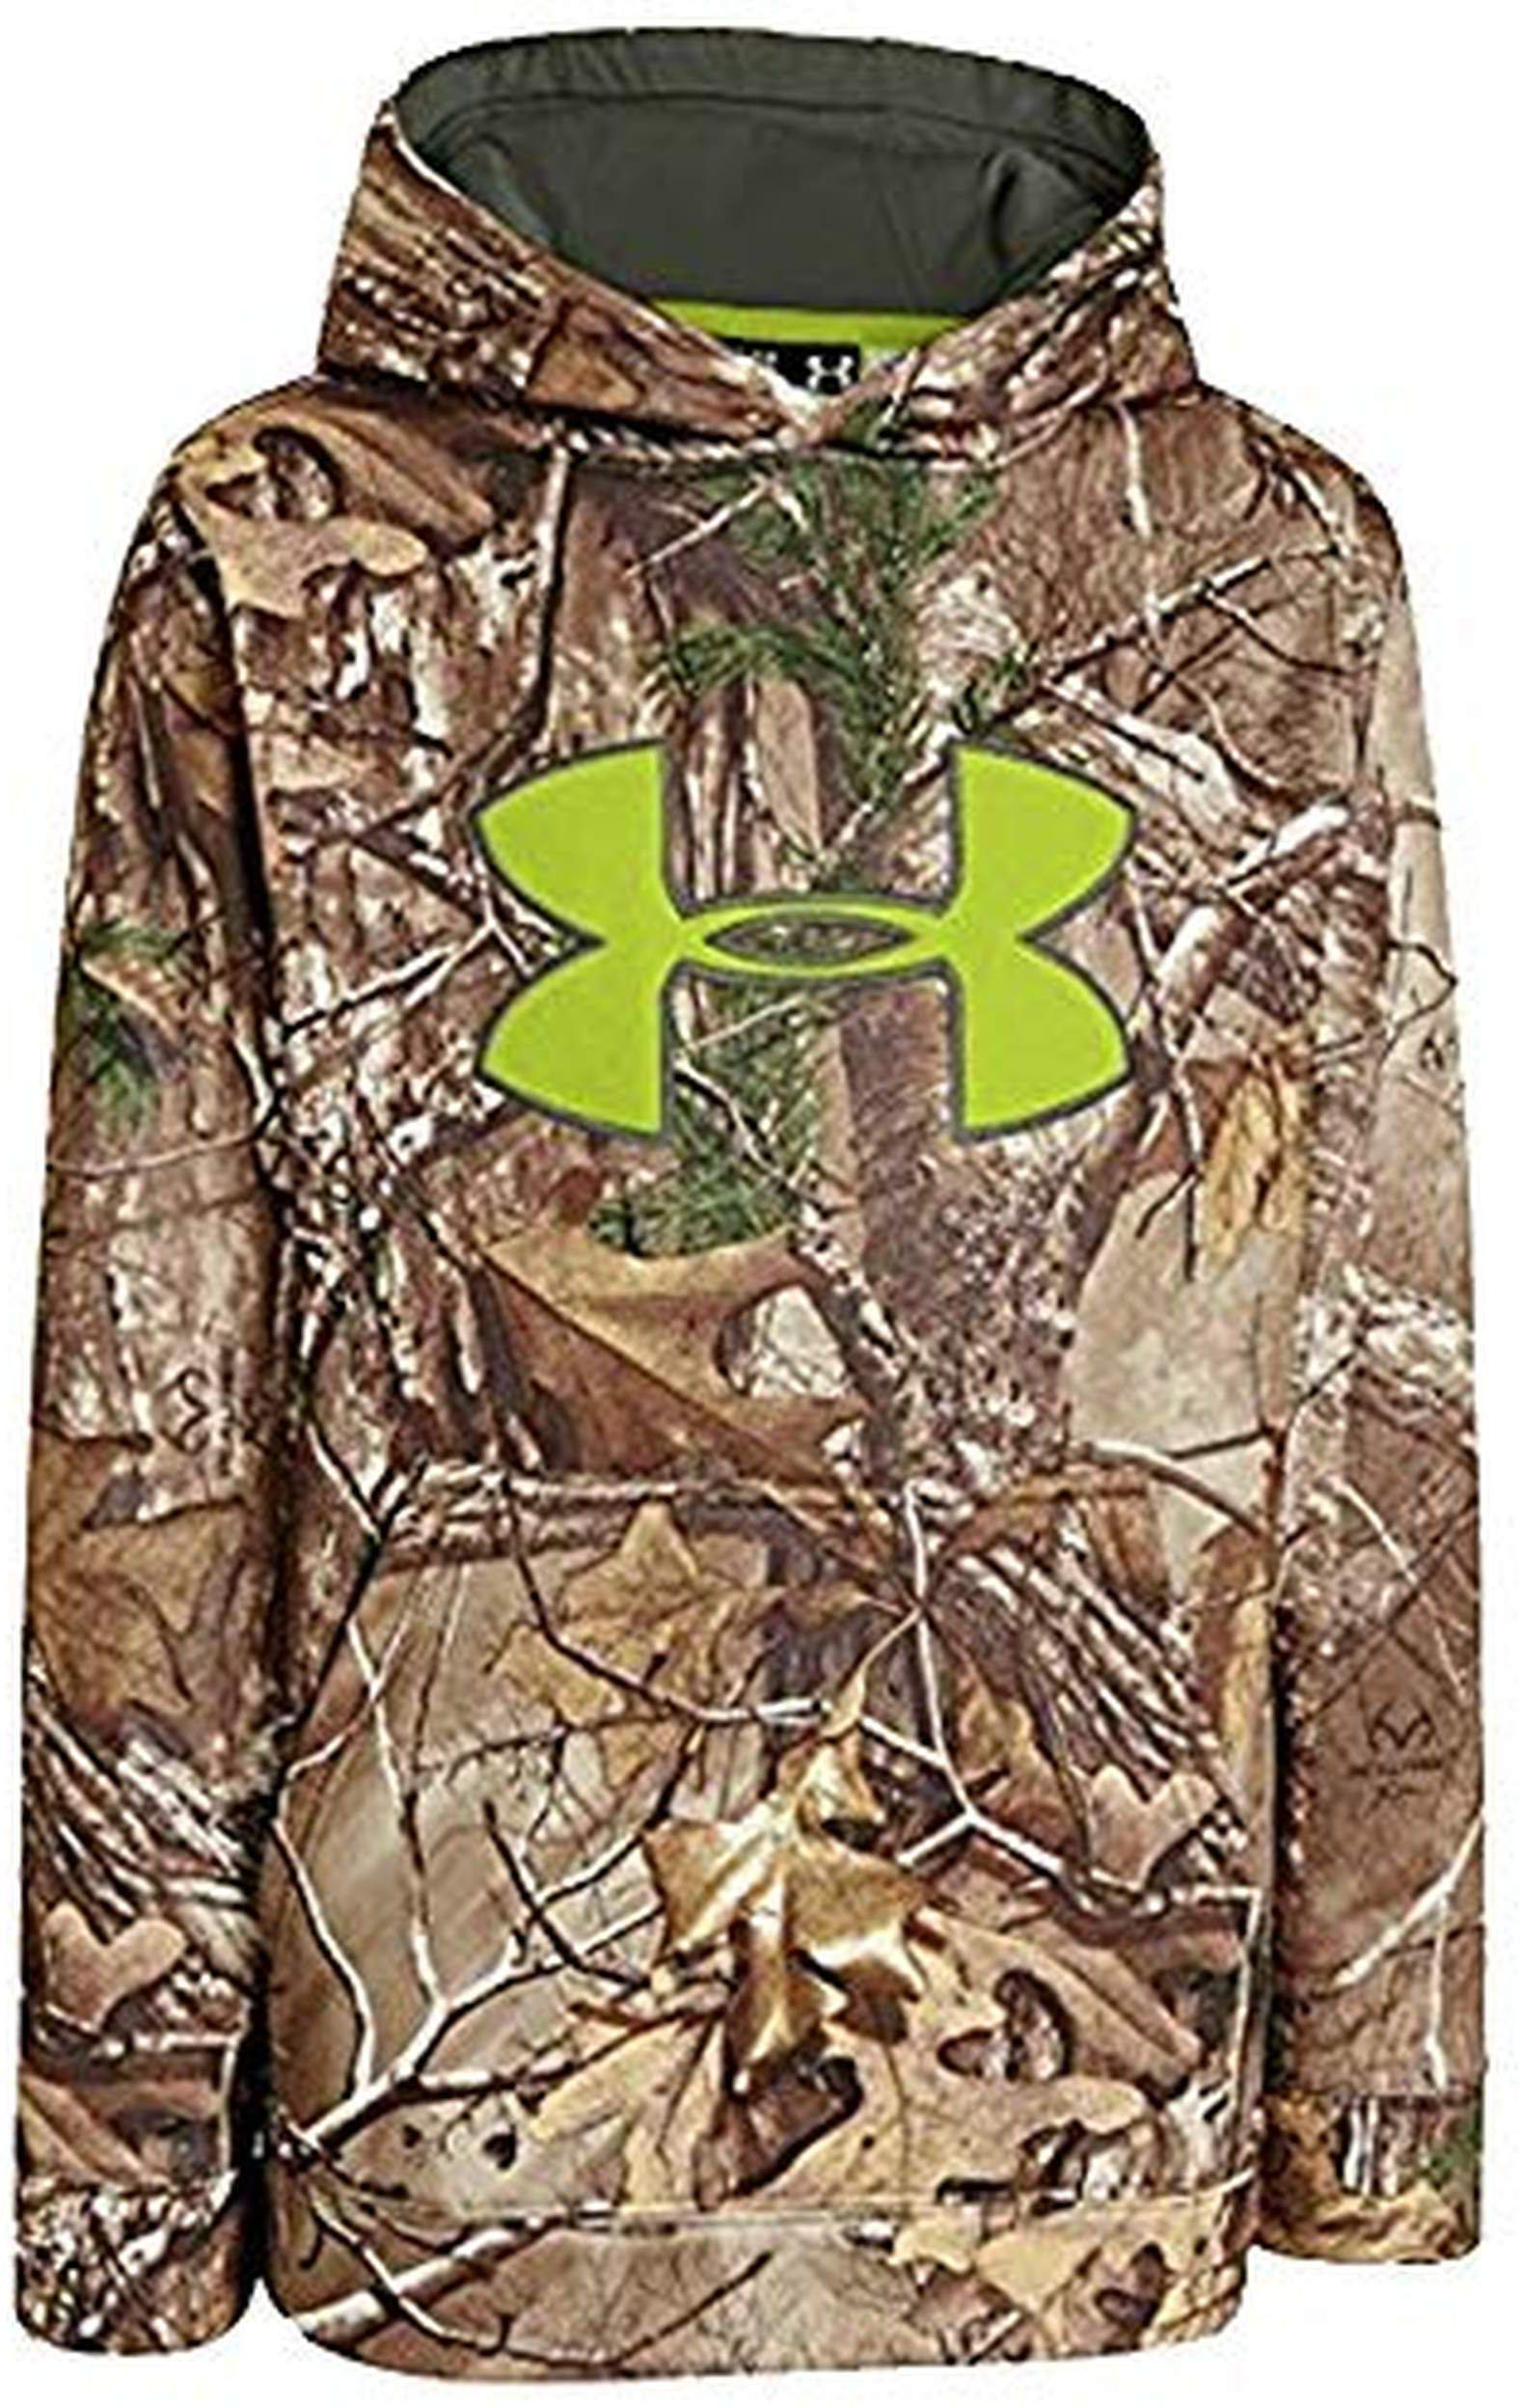 Under Armour Big Boys' Armour Fleece Scent Control Hoodie Youth X-Large REALTREE AP-XTRA by Under Armour